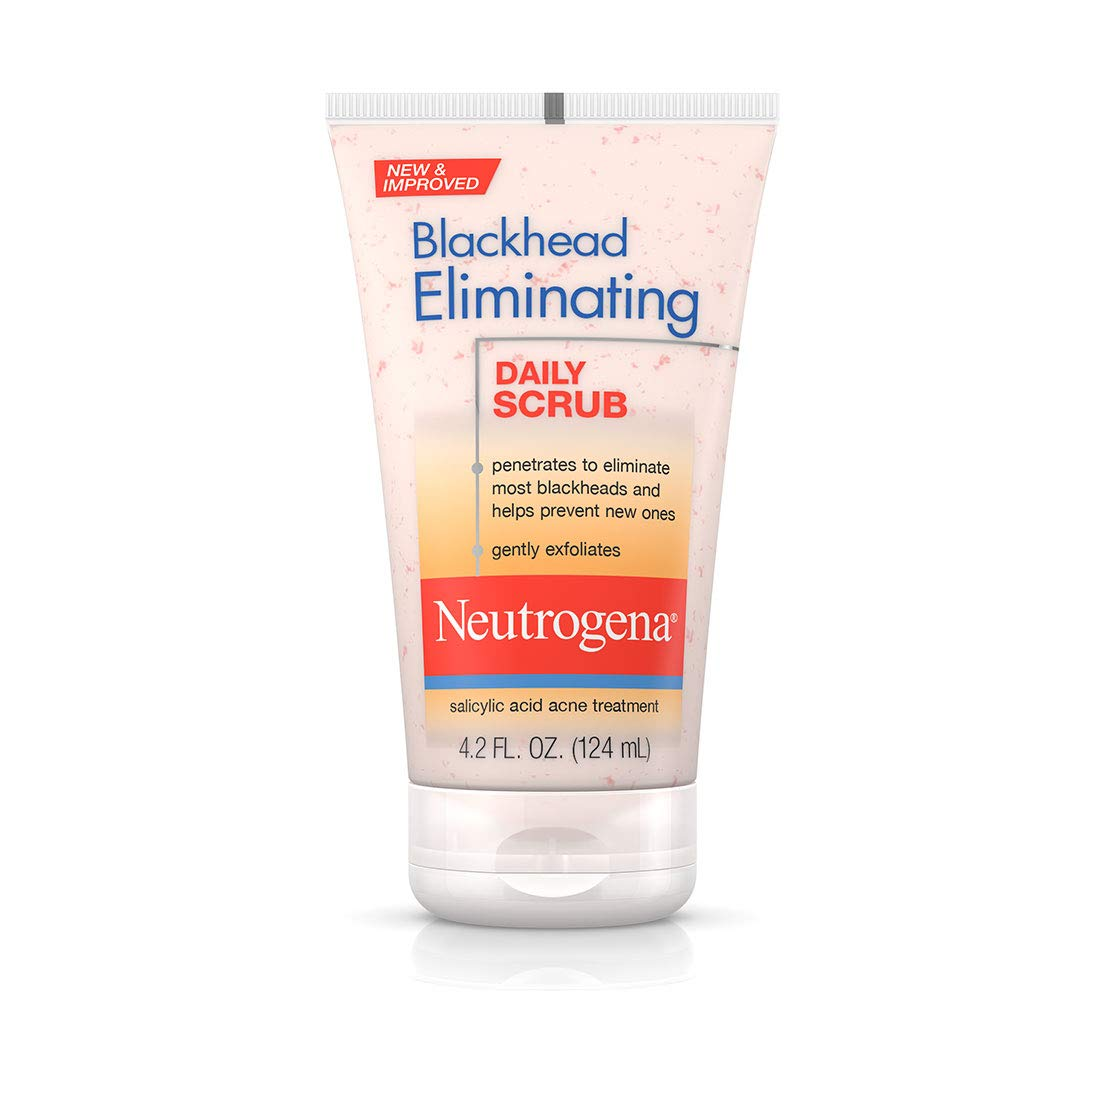 Neutrogena Blackhead Eliminating Daily Scrub, 4.2 Ounce